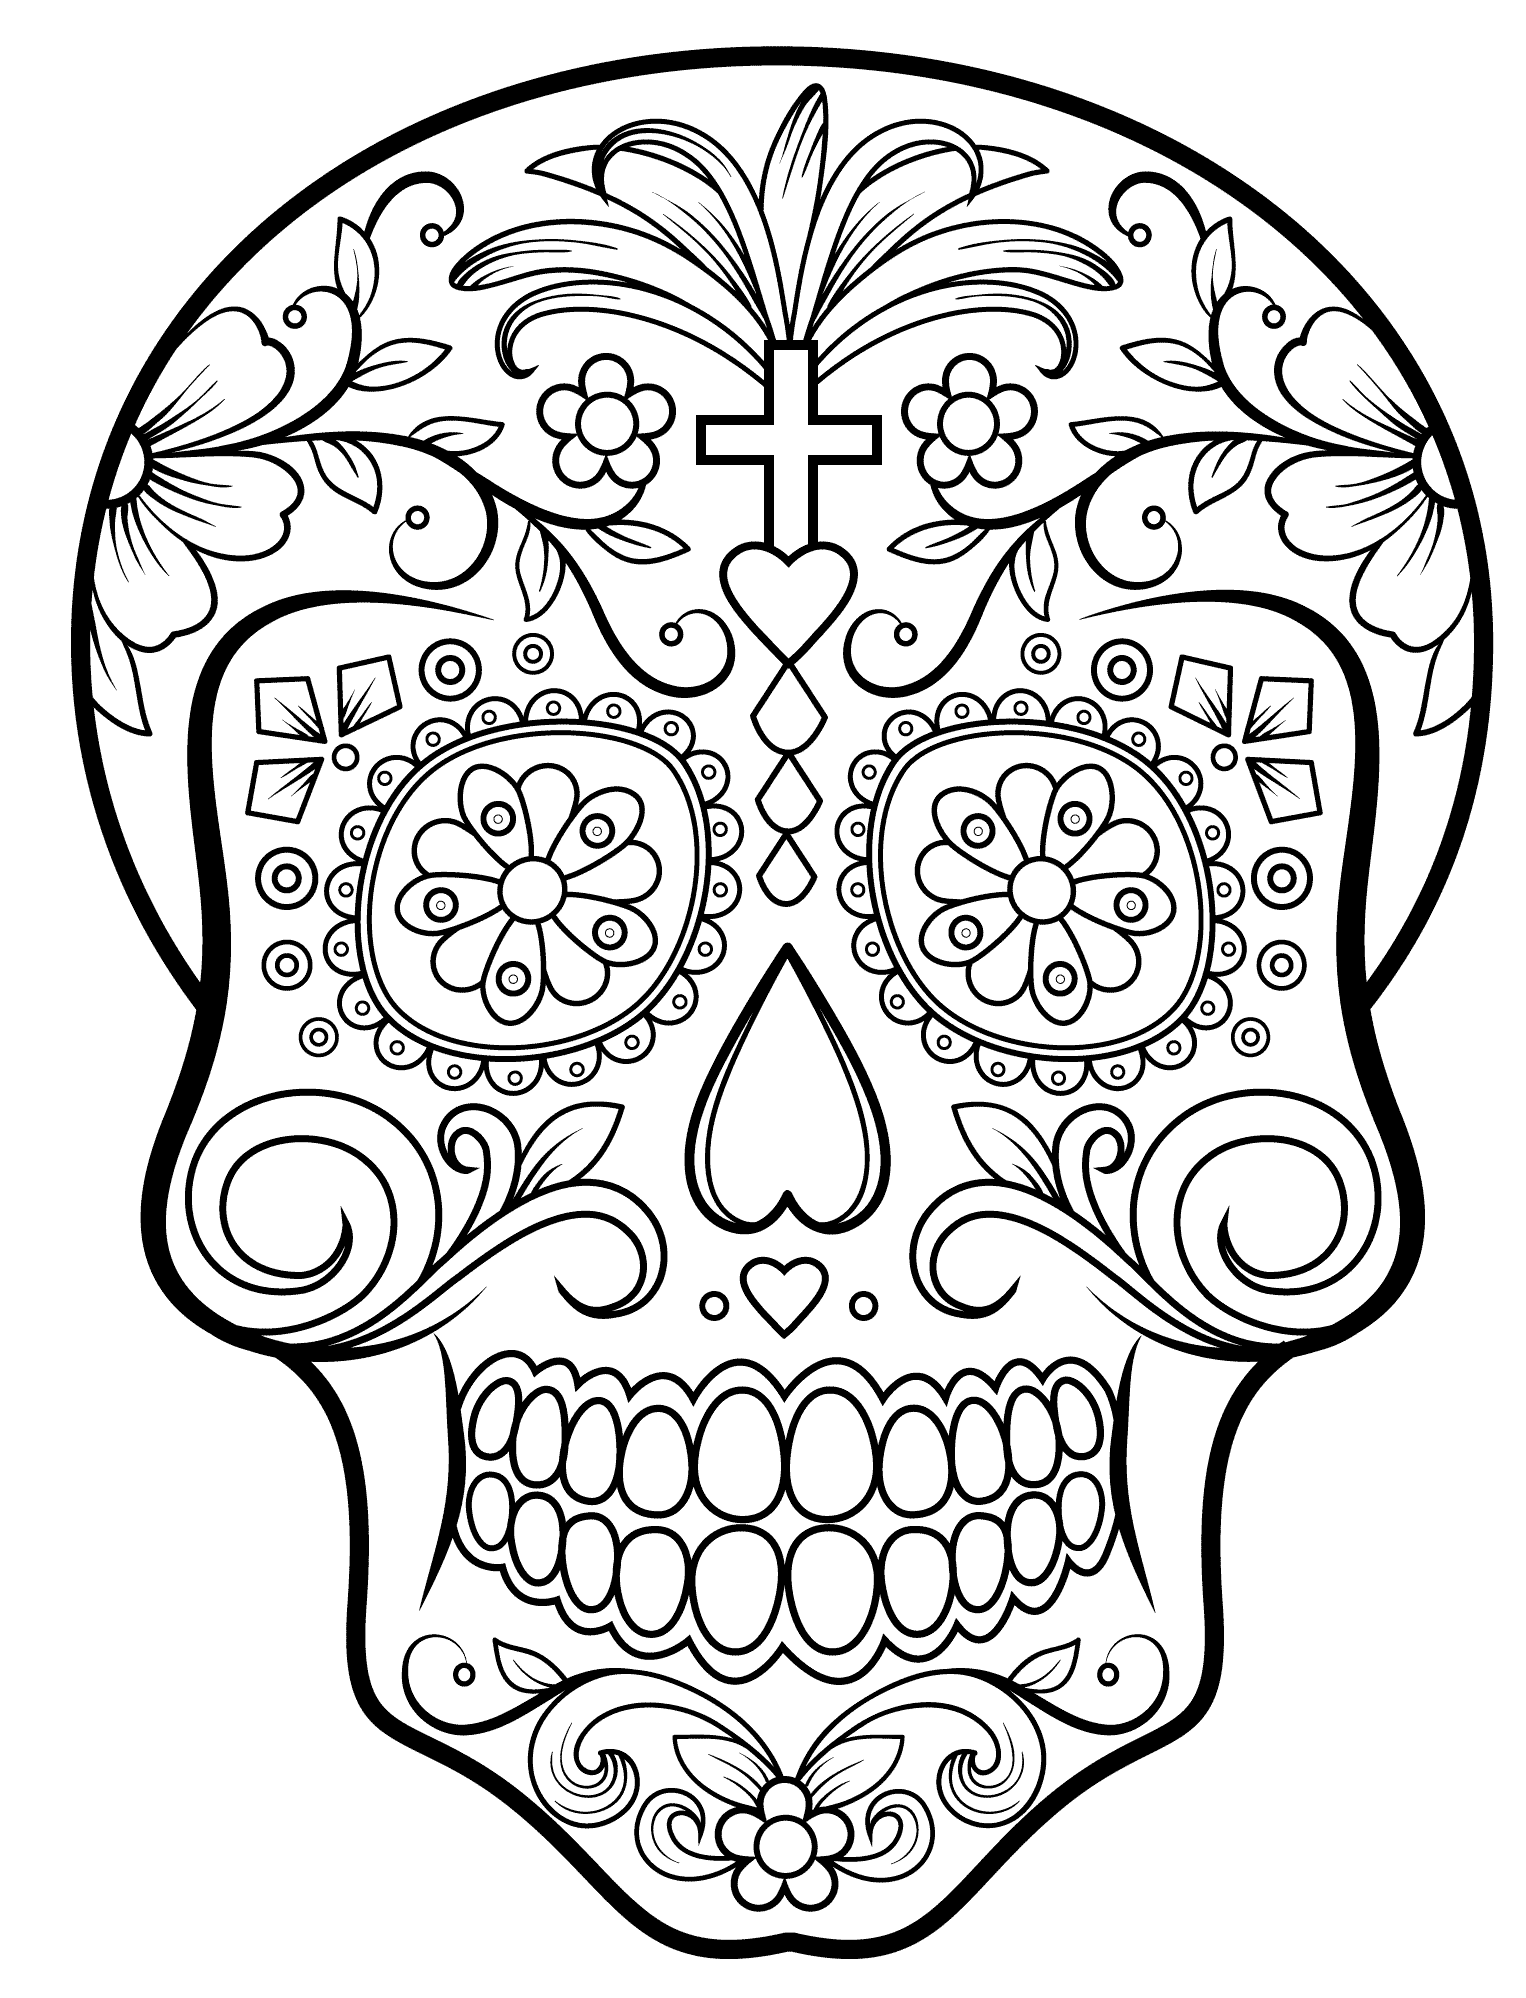 Sugar Skull Coloring Pages Pdf together with Bare Trees Clip Art together with Rose Tattoo Stencil Designs together with Stock Illustration Dirndl Traditional Dress Worn Germany Austria Icons Set Vector Black German Women S Outfit Octoberfest Other Beer Image59128991 moreover . on scary dead flowers